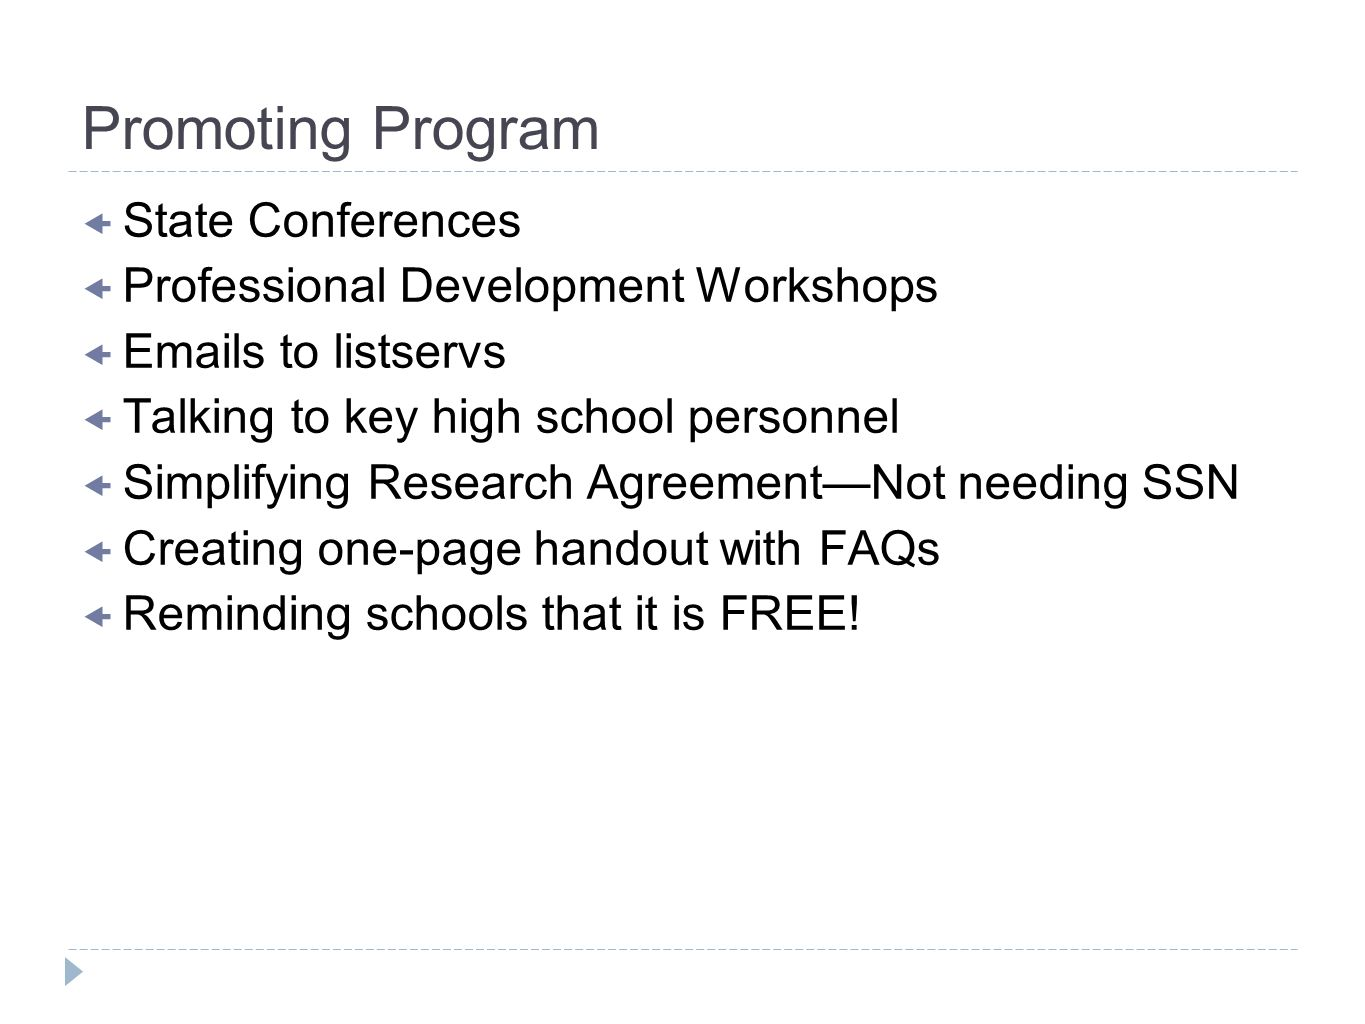 Promoting Program State Conferences Professional Development Workshops  s to listservs Talking to key high school personnel Simplifying Research AgreementNot needing SSN Creating one-page handout with FAQs Reminding schools that it is FREE!